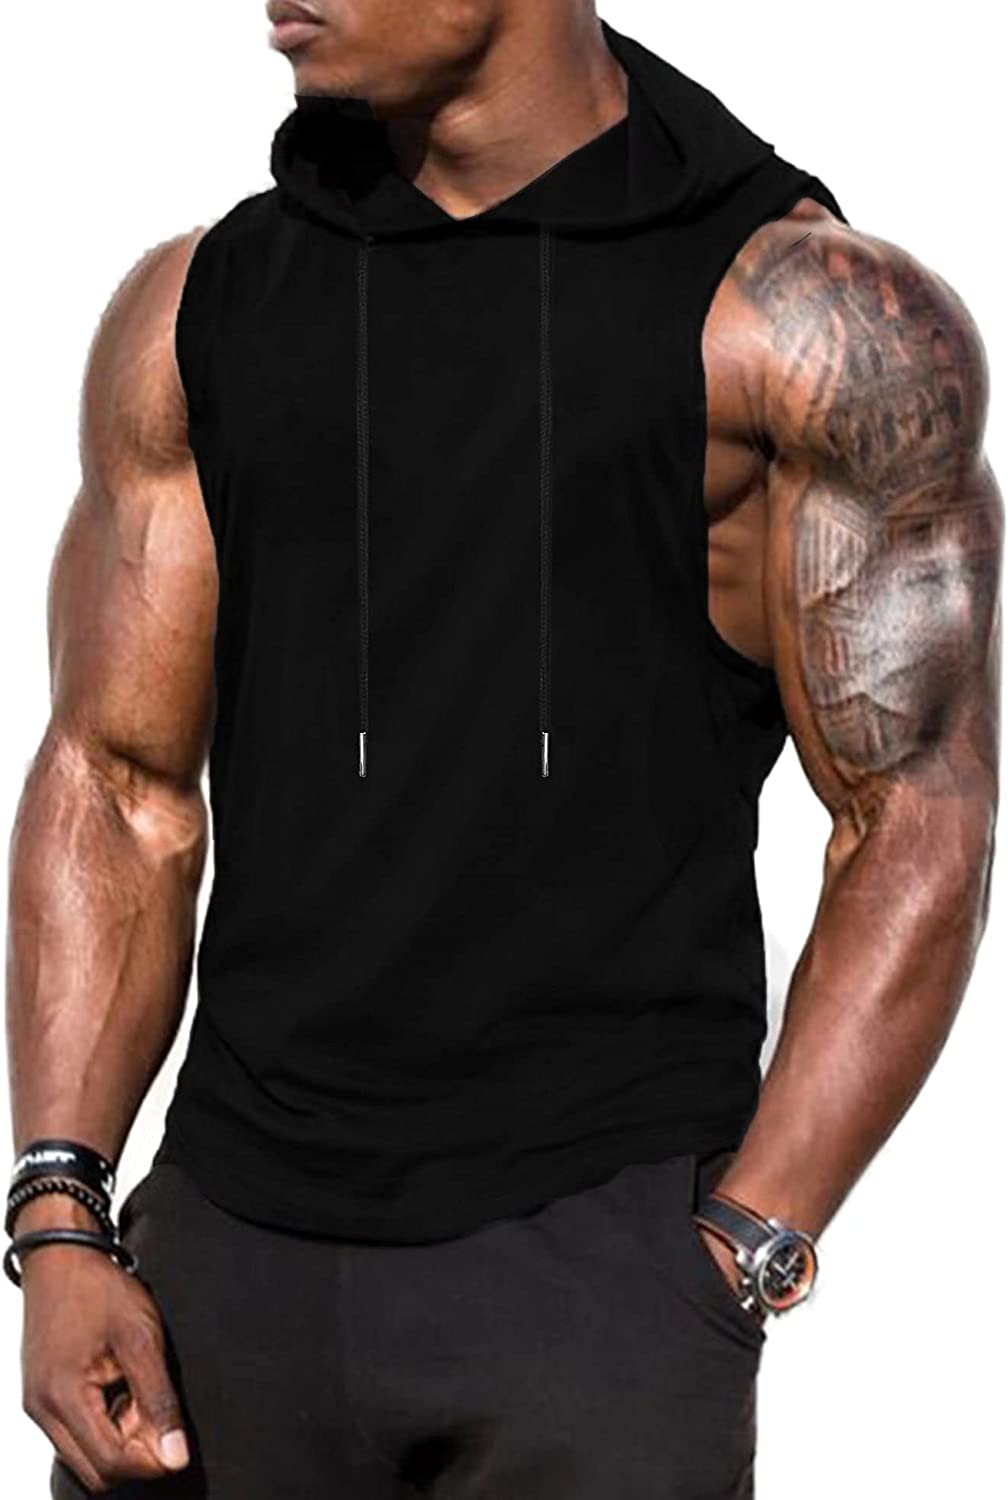 Babioboa Men's Workout Hooded Tank Tops Sports Training Sleeveless Gym Hoodies Bodybuilding Cut Off Muscle Shirts